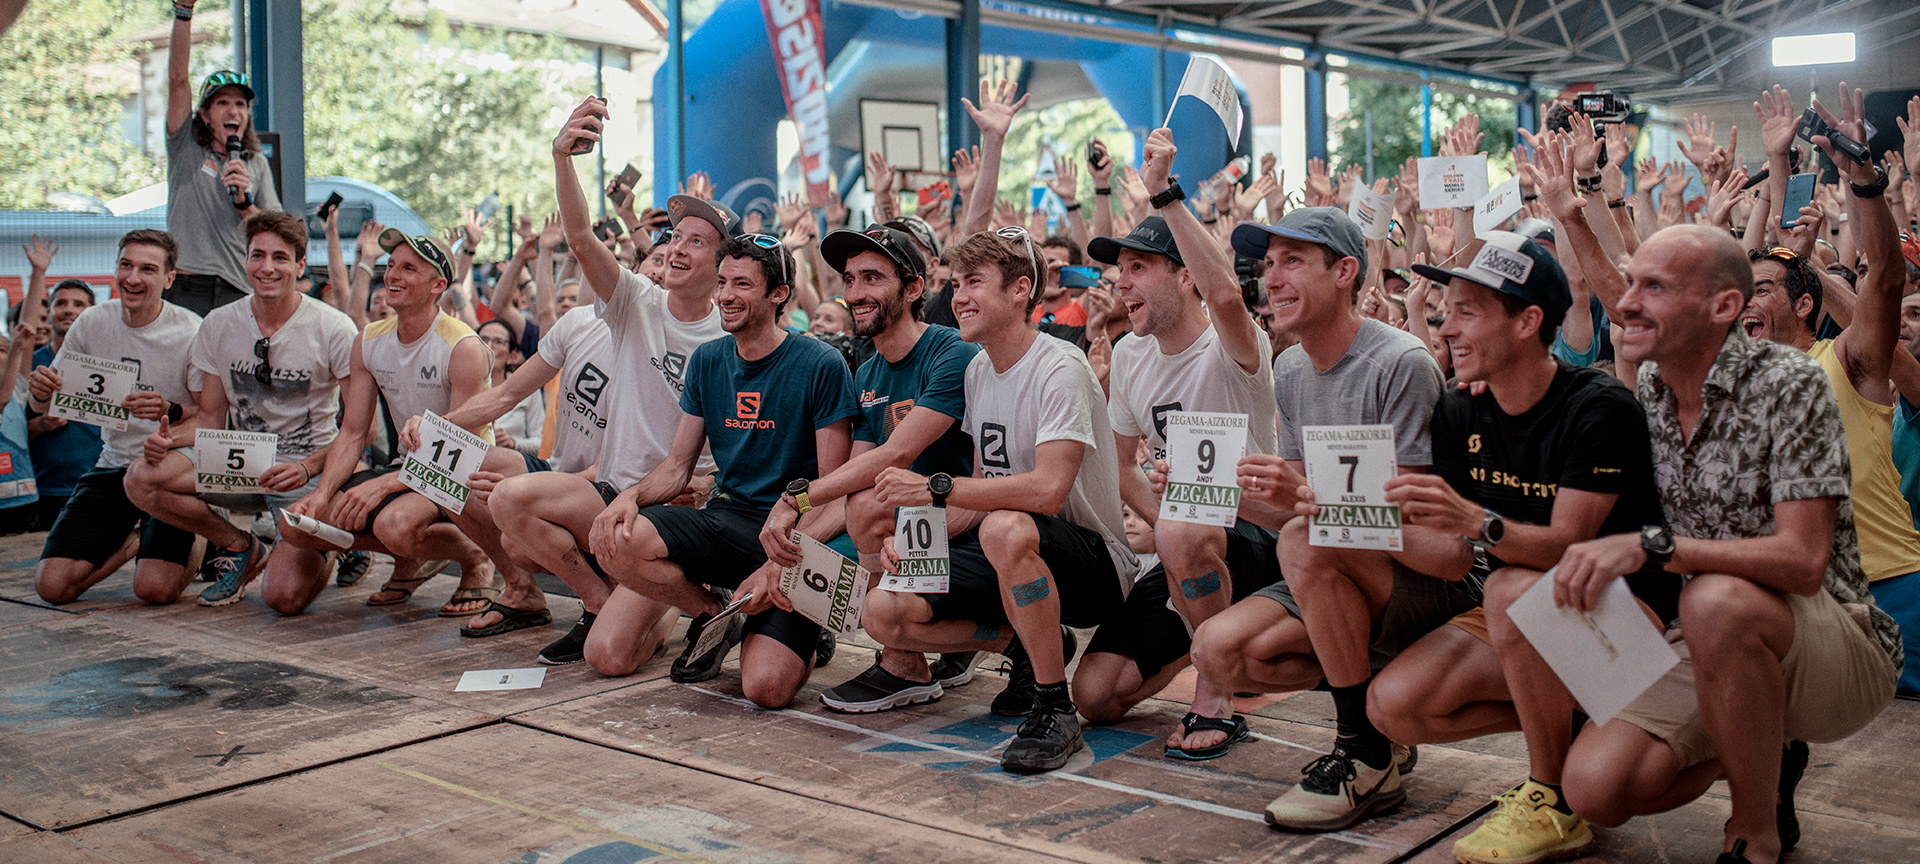 List of participants for the Zegama-Aizkorri 2018